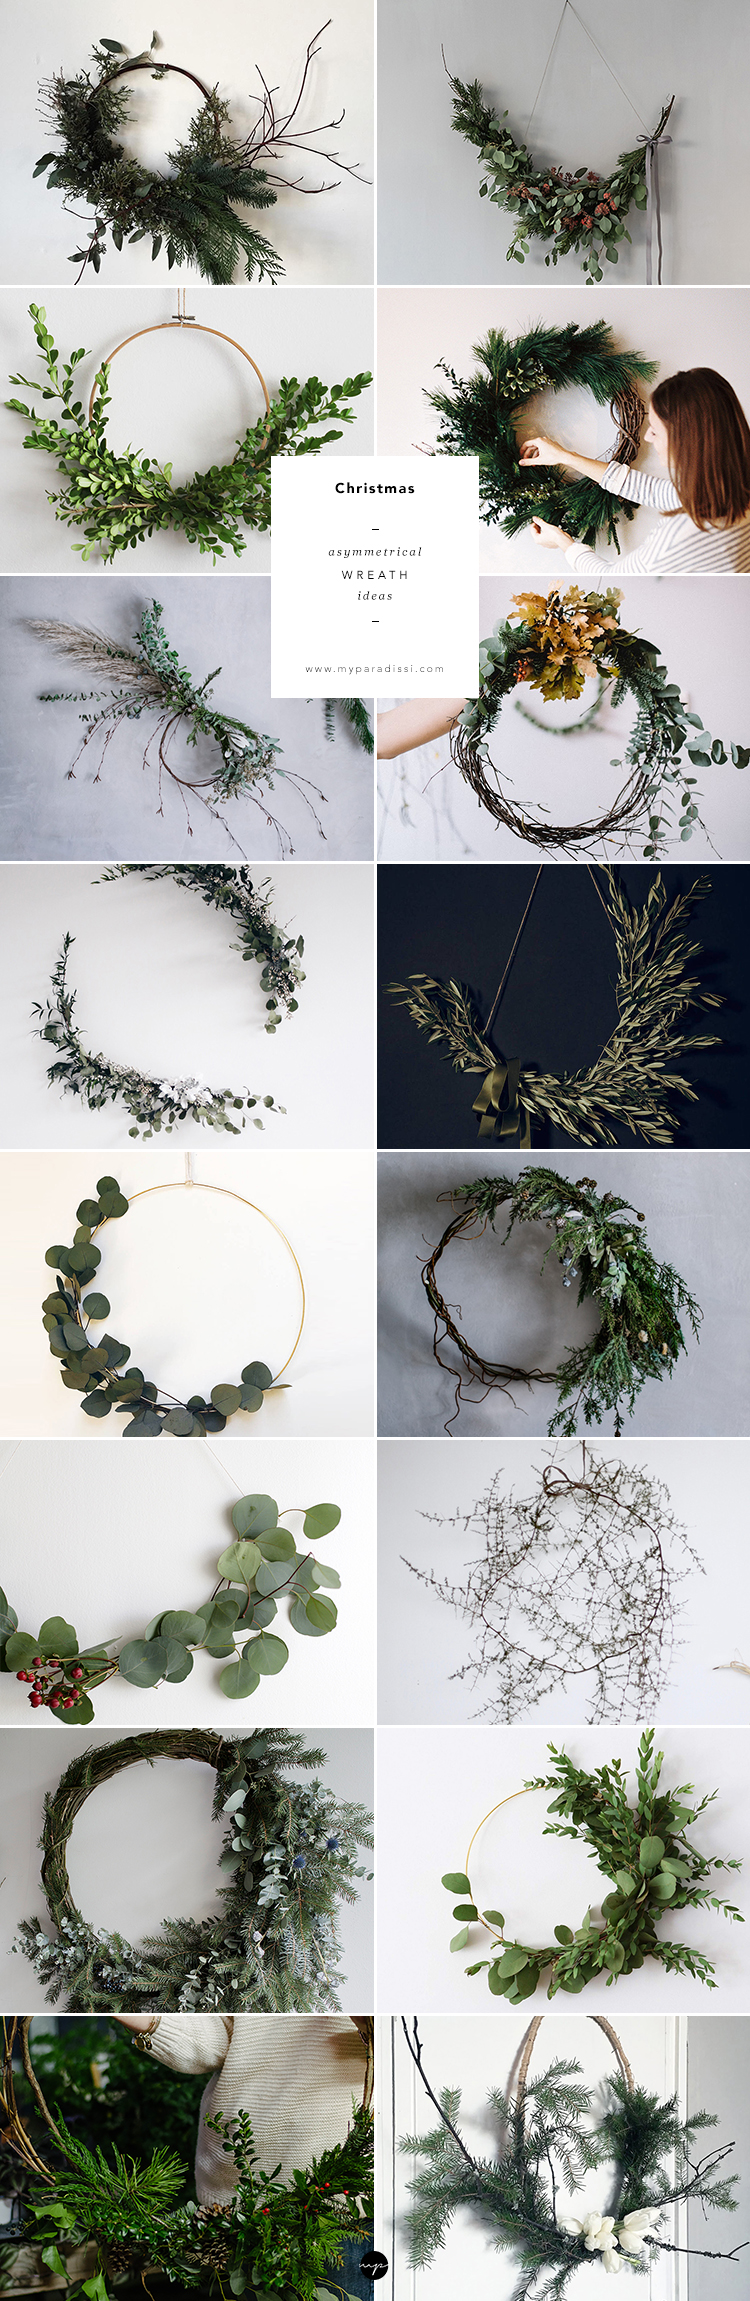 Asymmetrical wreath ideas